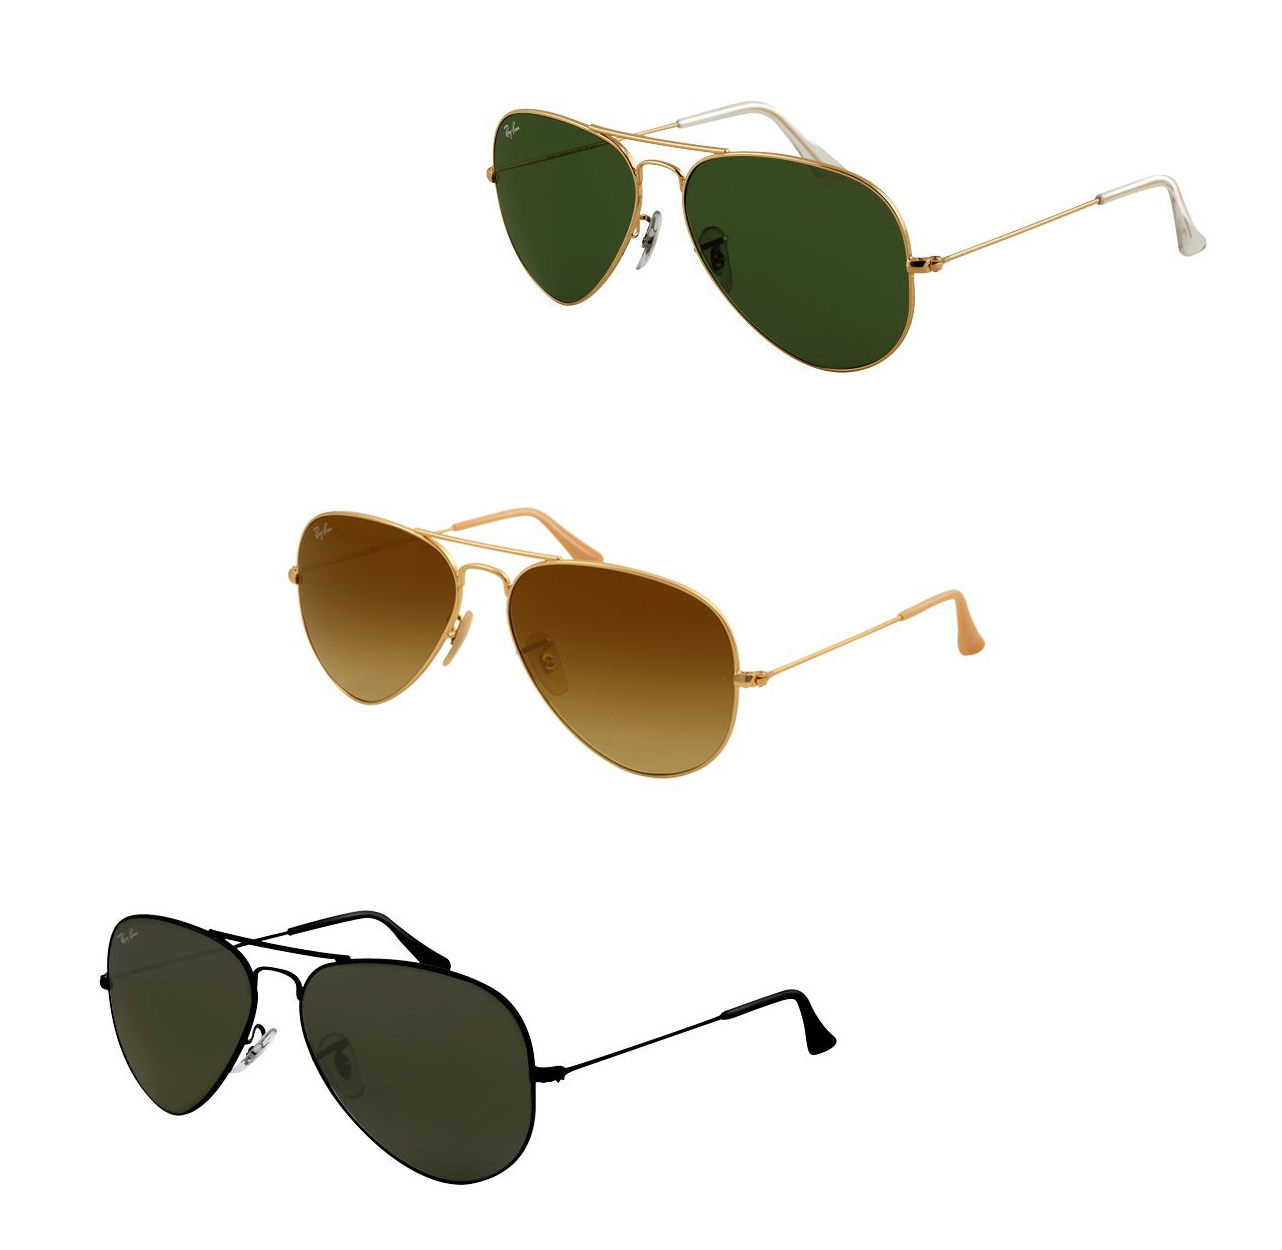 05249fc3864 Ray-Ban RB3025 Aviator Large Metal Sunglasses - 86 Models